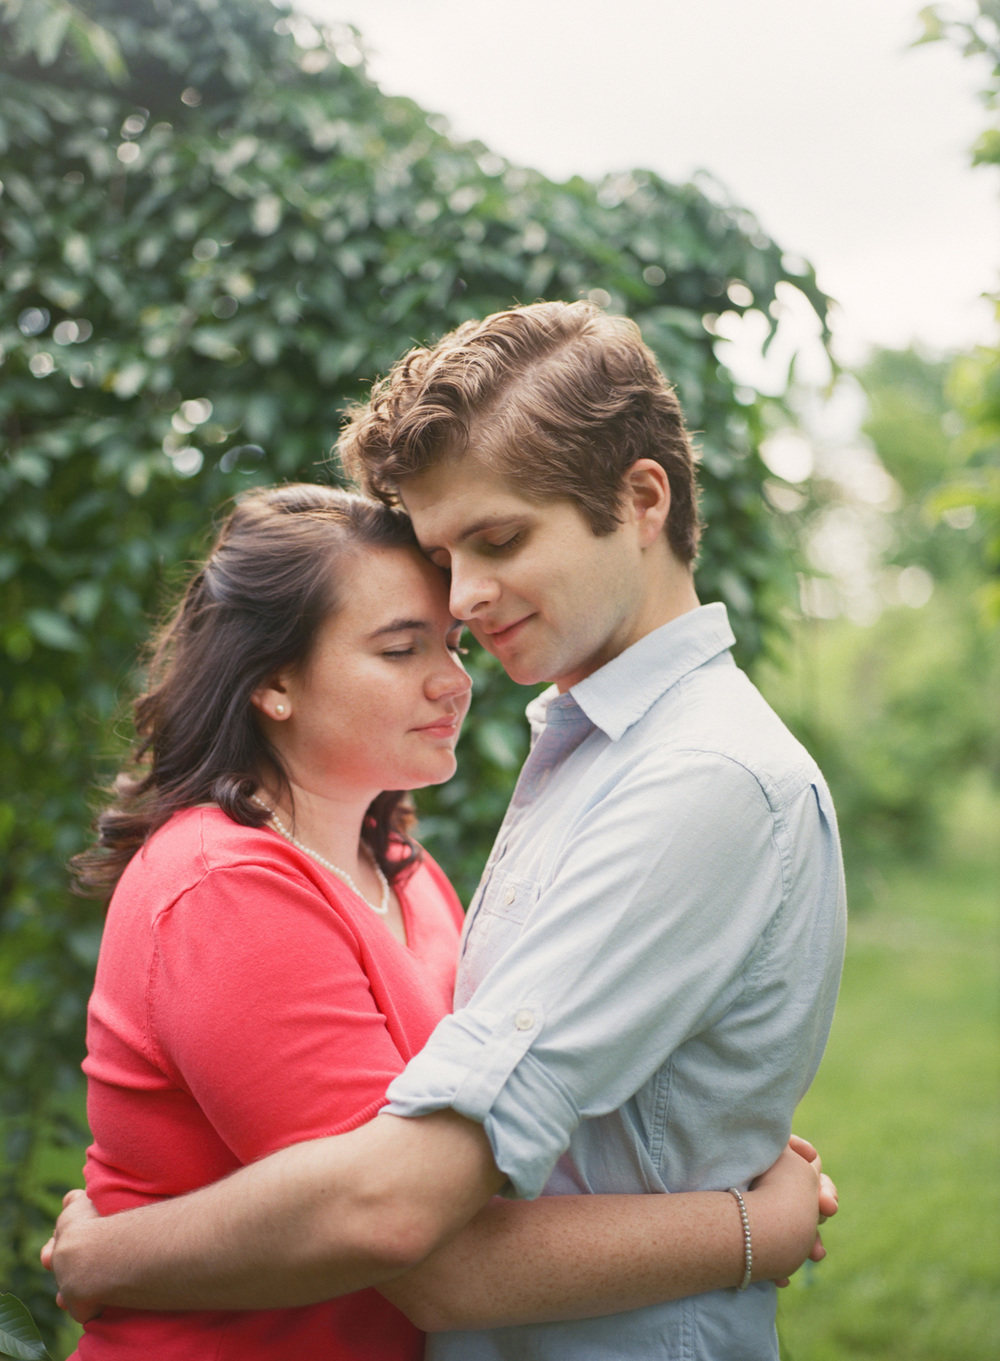 Washington DC Wedding Photographer | Tim Riddick Photography | Washington DC Engagement Film Photographer